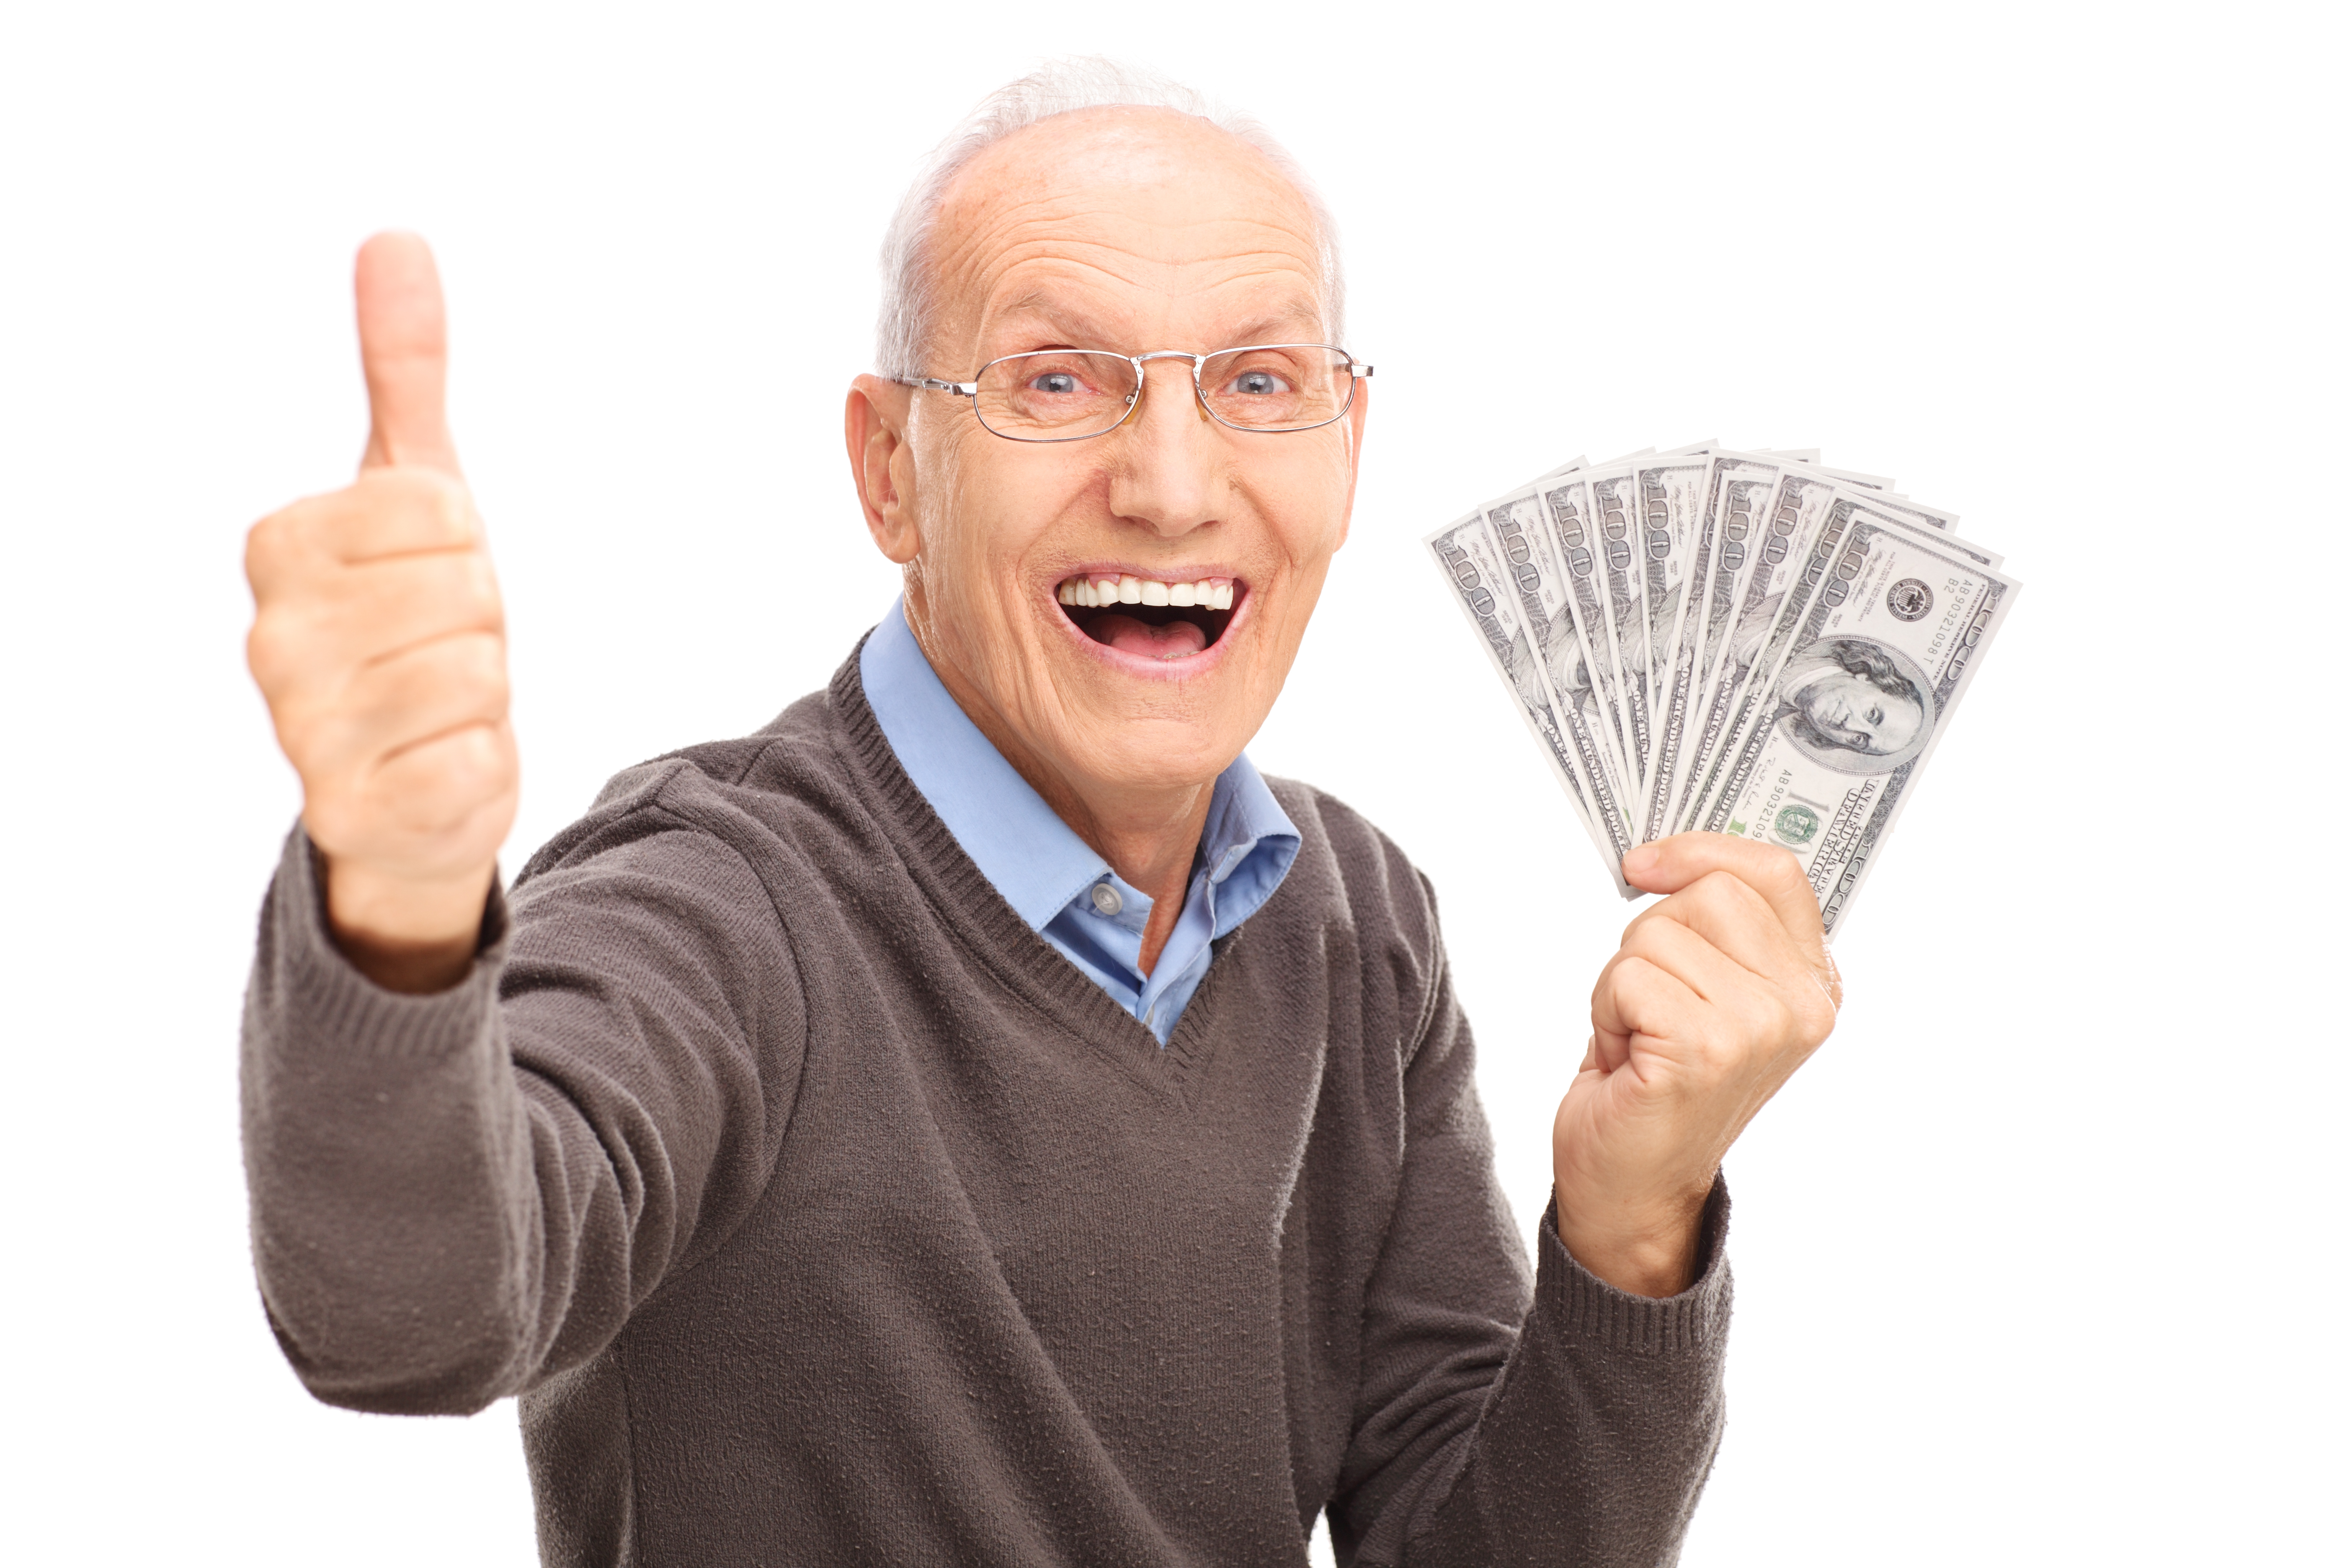 Man Celebrating Making Money with Cash in Hand